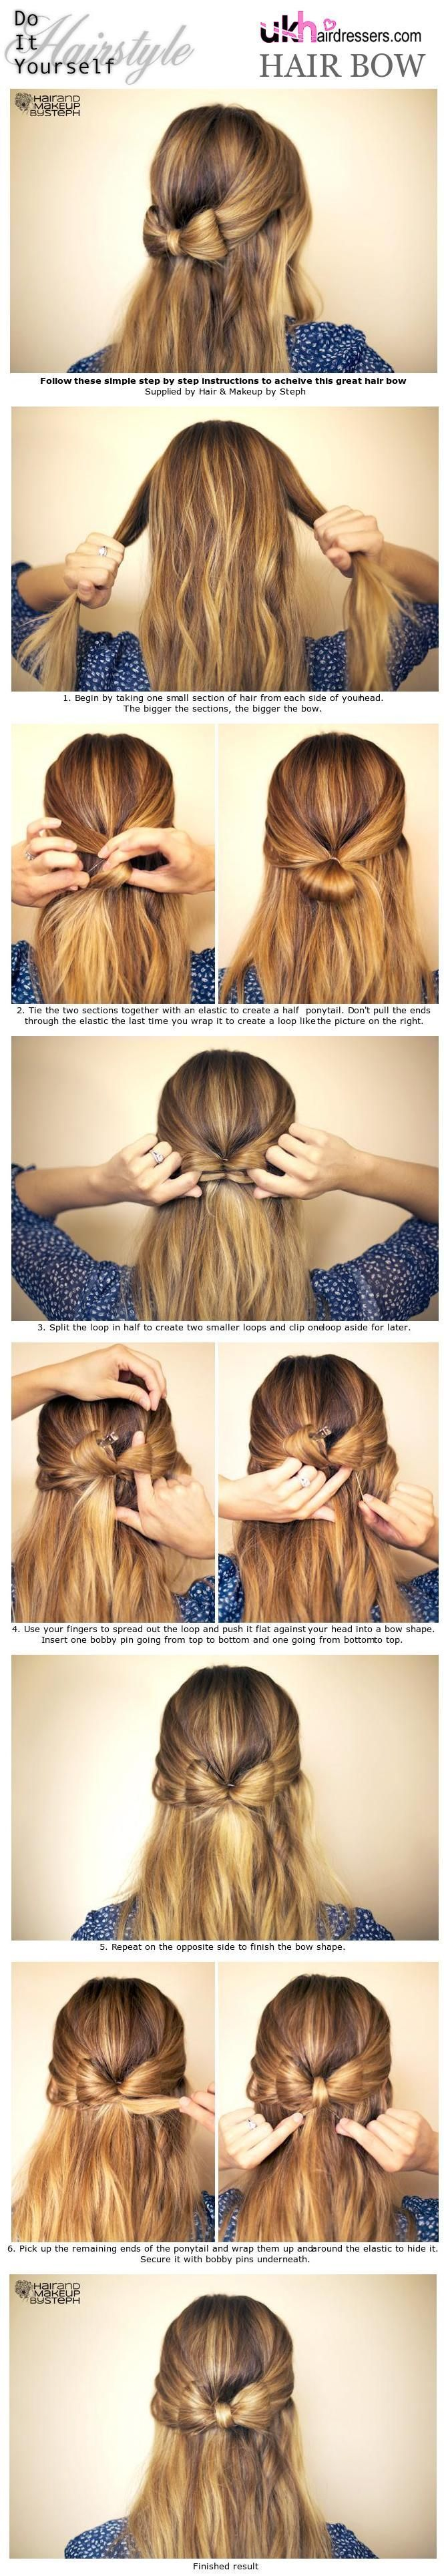 Cute 5-Minute Hairstyles - Hair Bow Hairstyle Tutorial